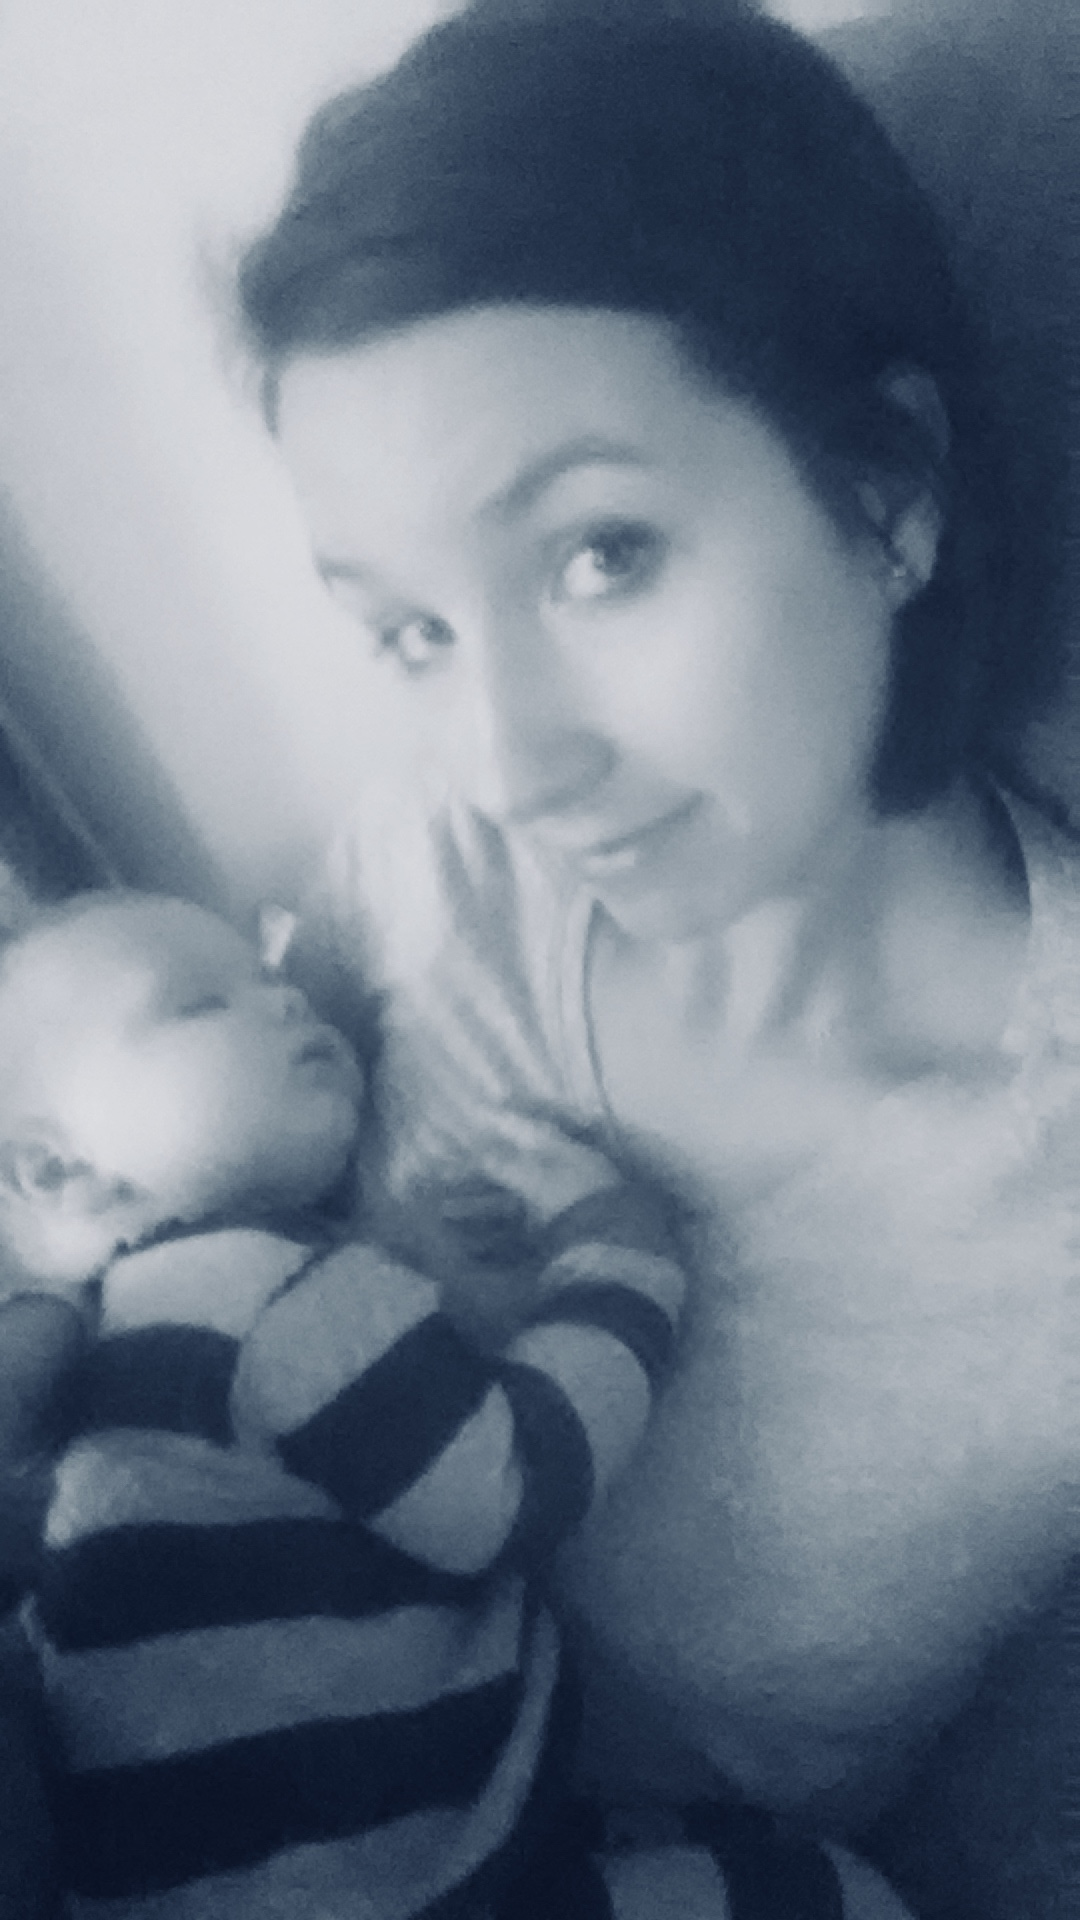 Amber with her first son.